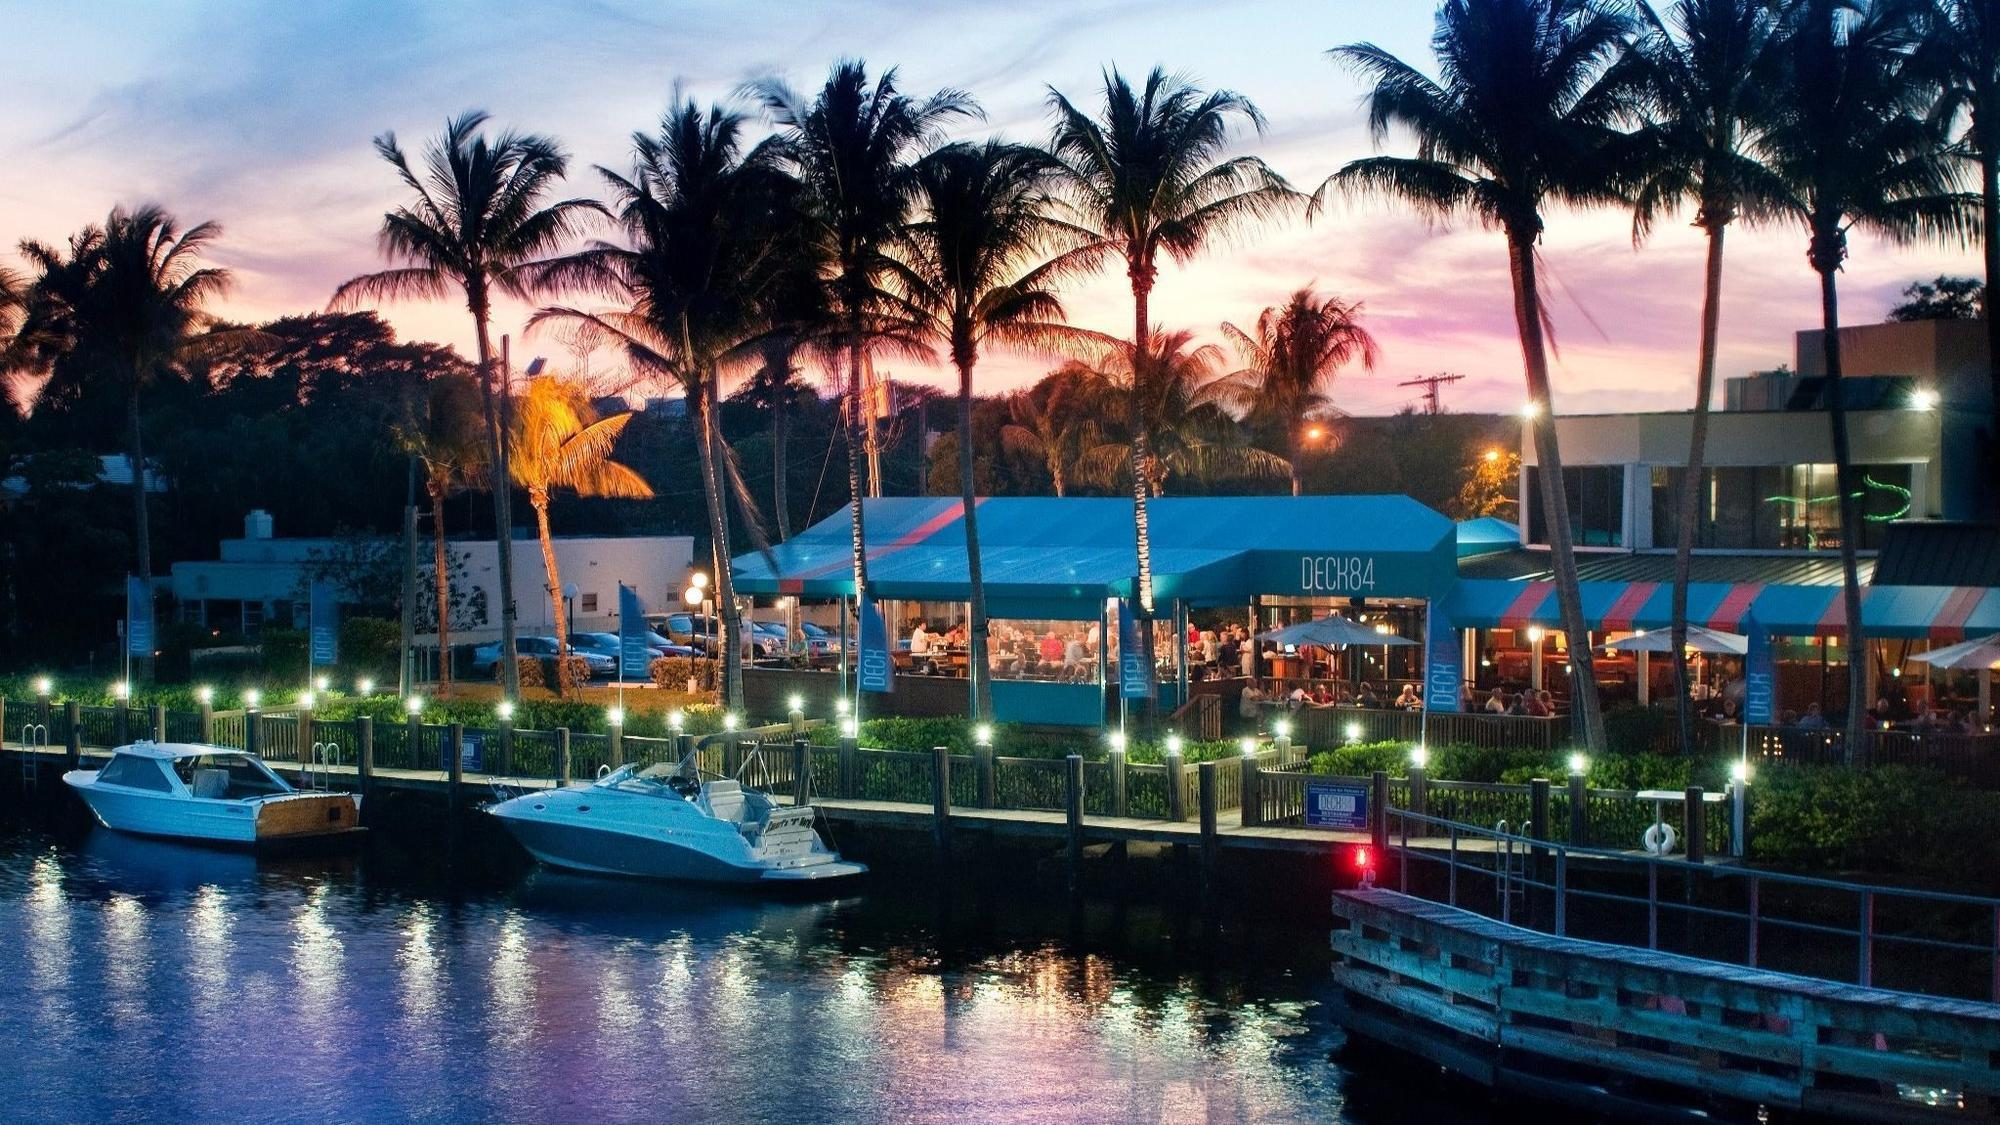 Delray Beach Fl 33444 Mail: Why Delray? A Beautiful Beach And A Bustling Avenue